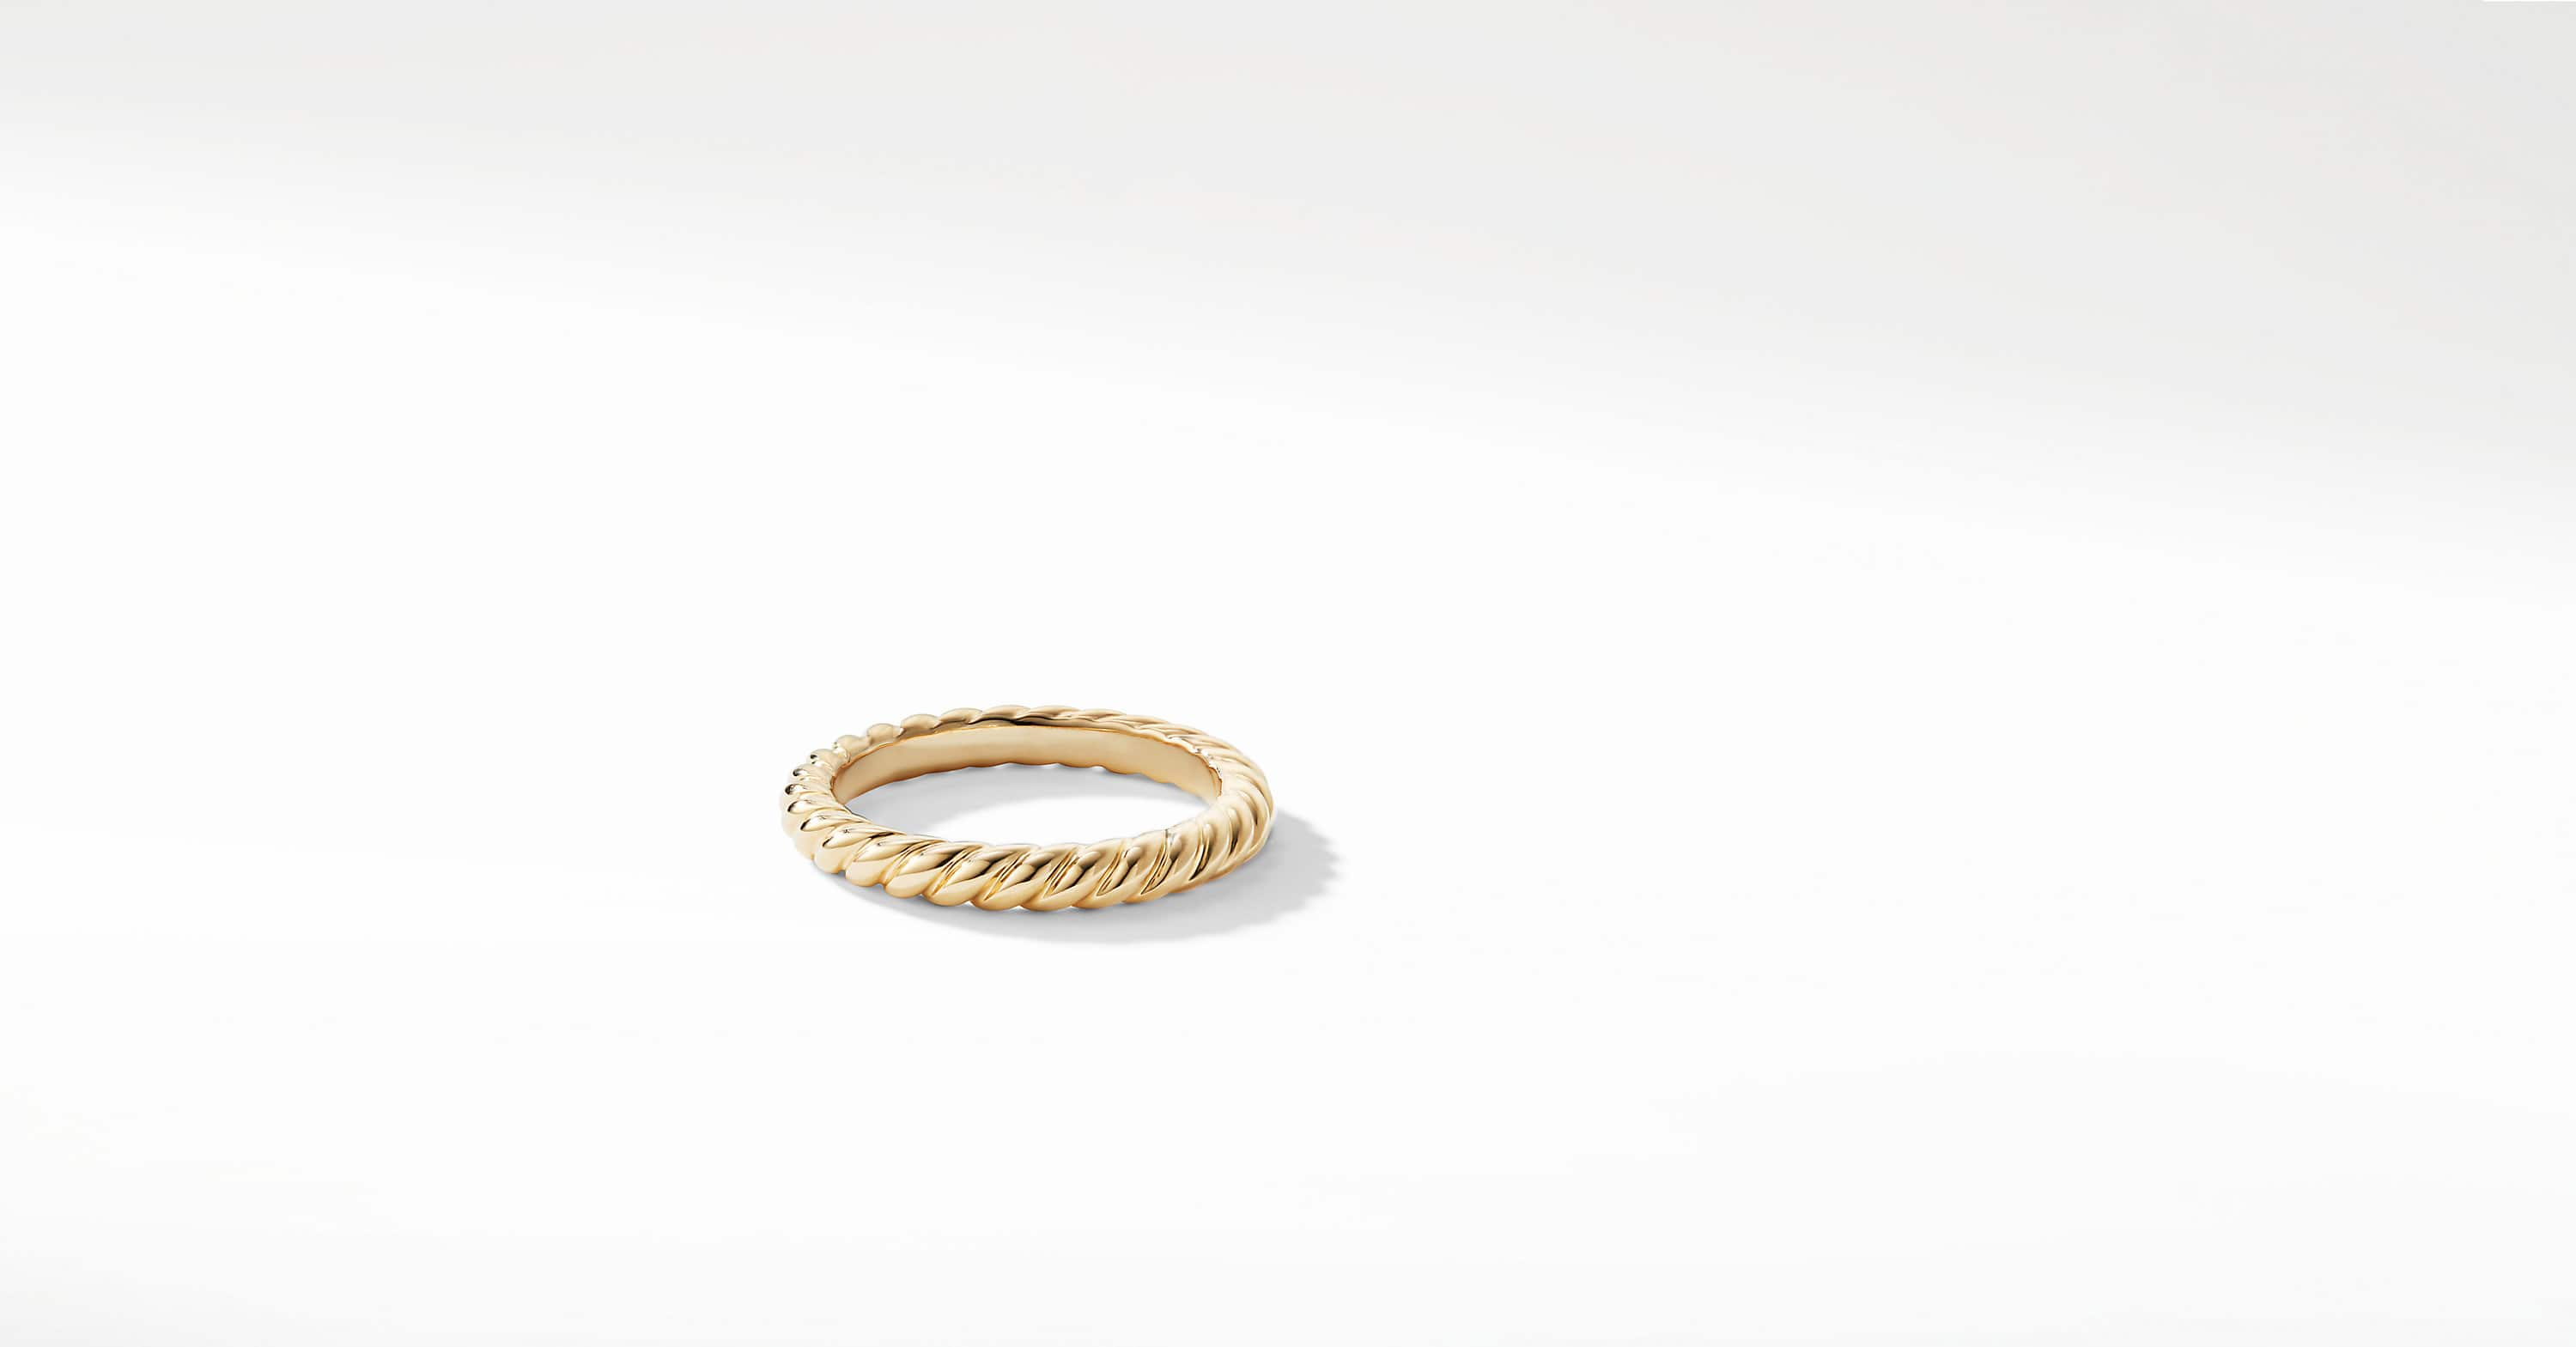 DY Unity Cable Wedding Band in 18K Gold, 3mm